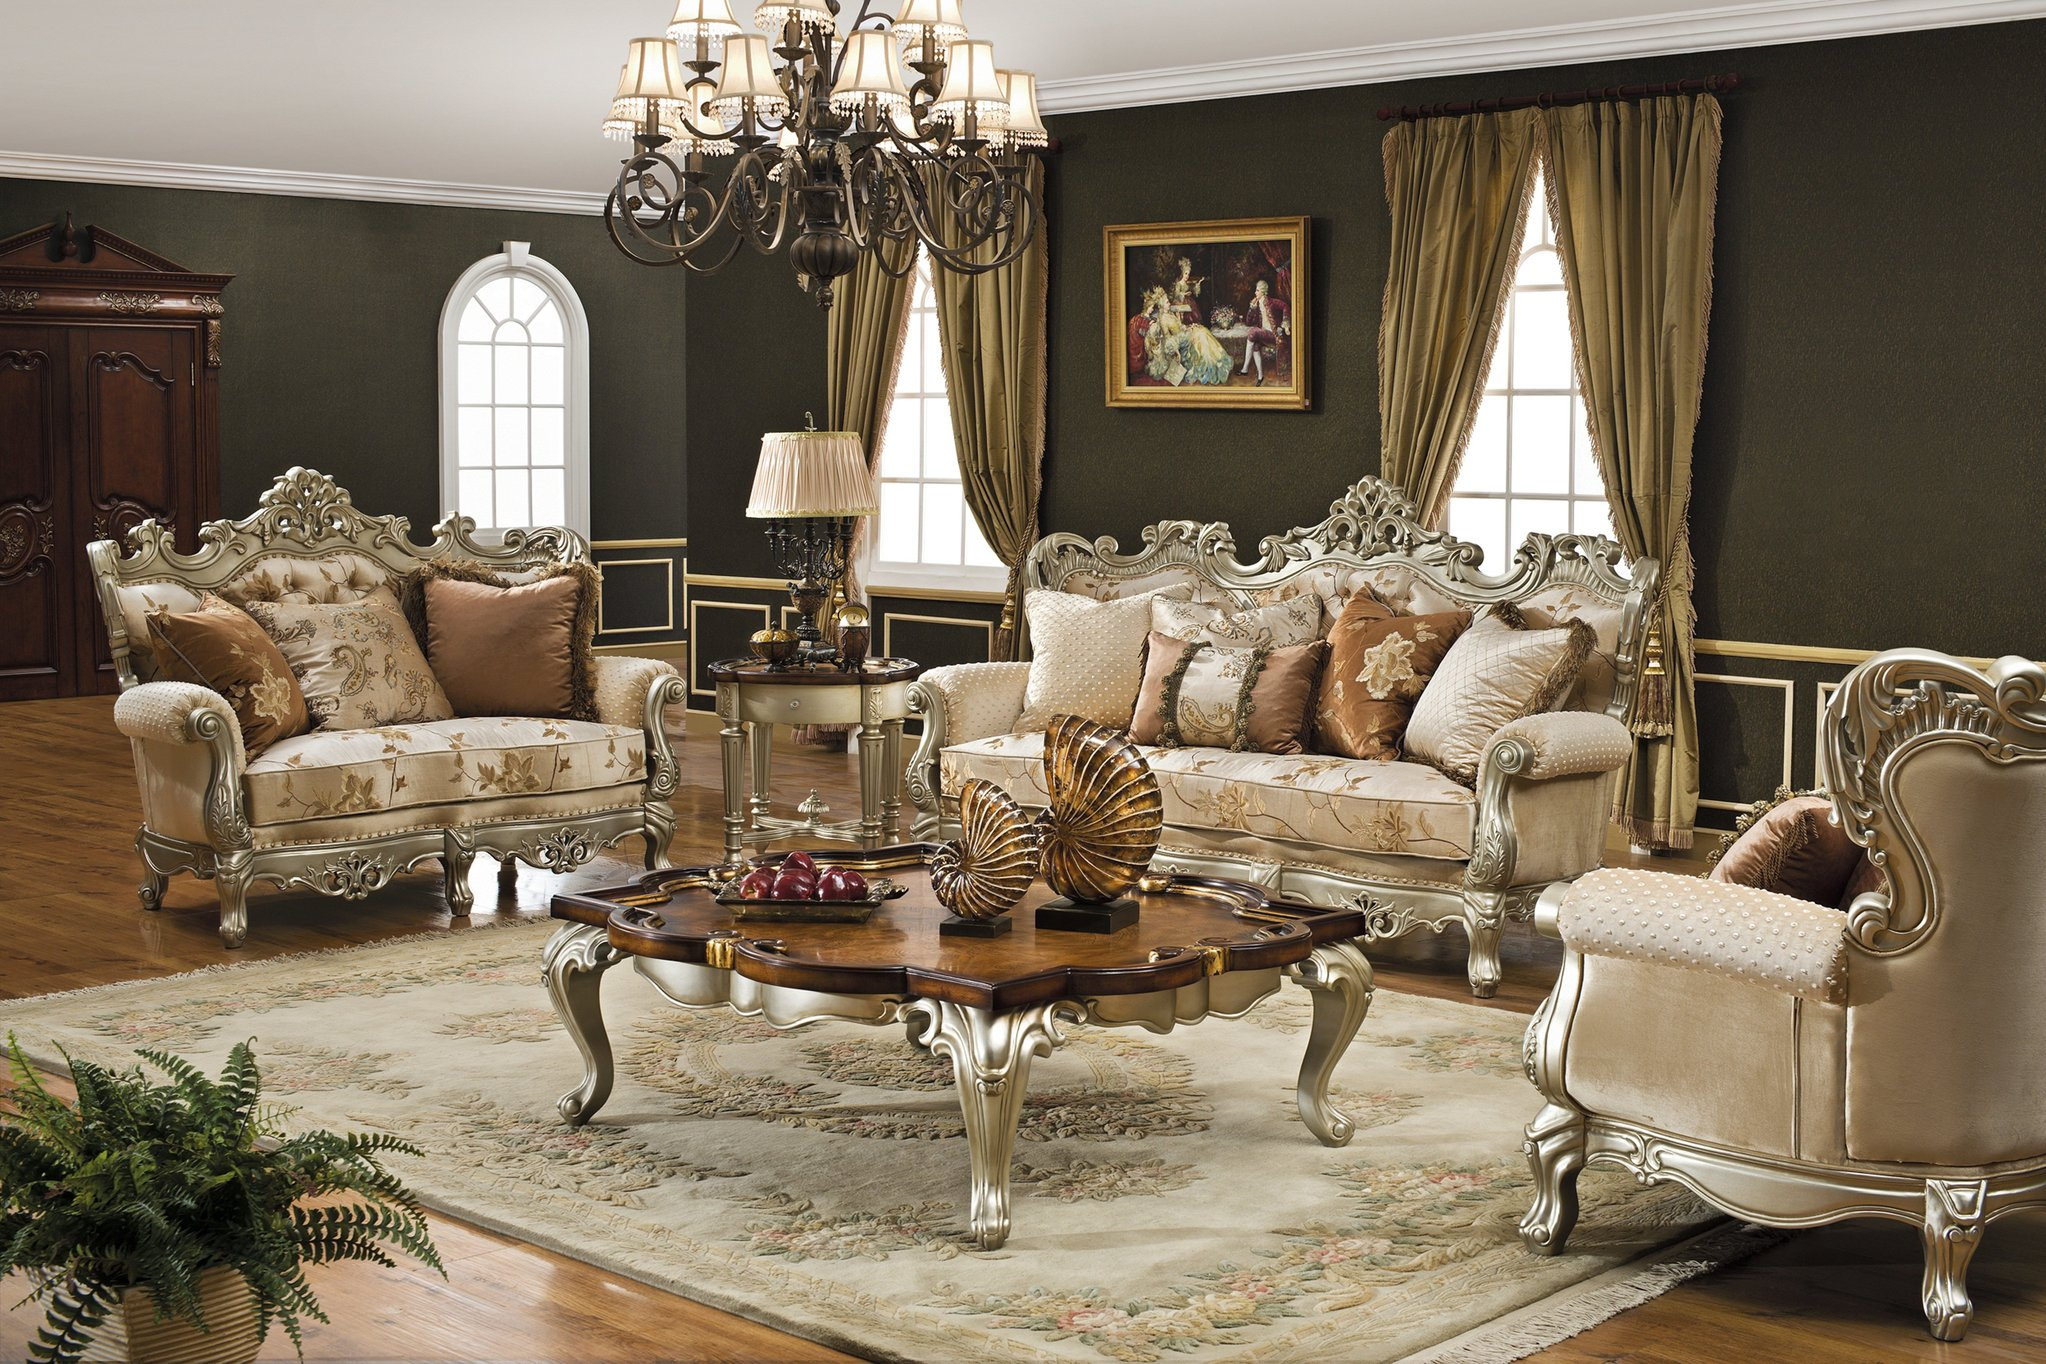 Living Room Furniture Living Room Sets Sofas Couches Living throughout 12 Some of the Coolest Initiatives of How to Improve Luxury Living Room Sets